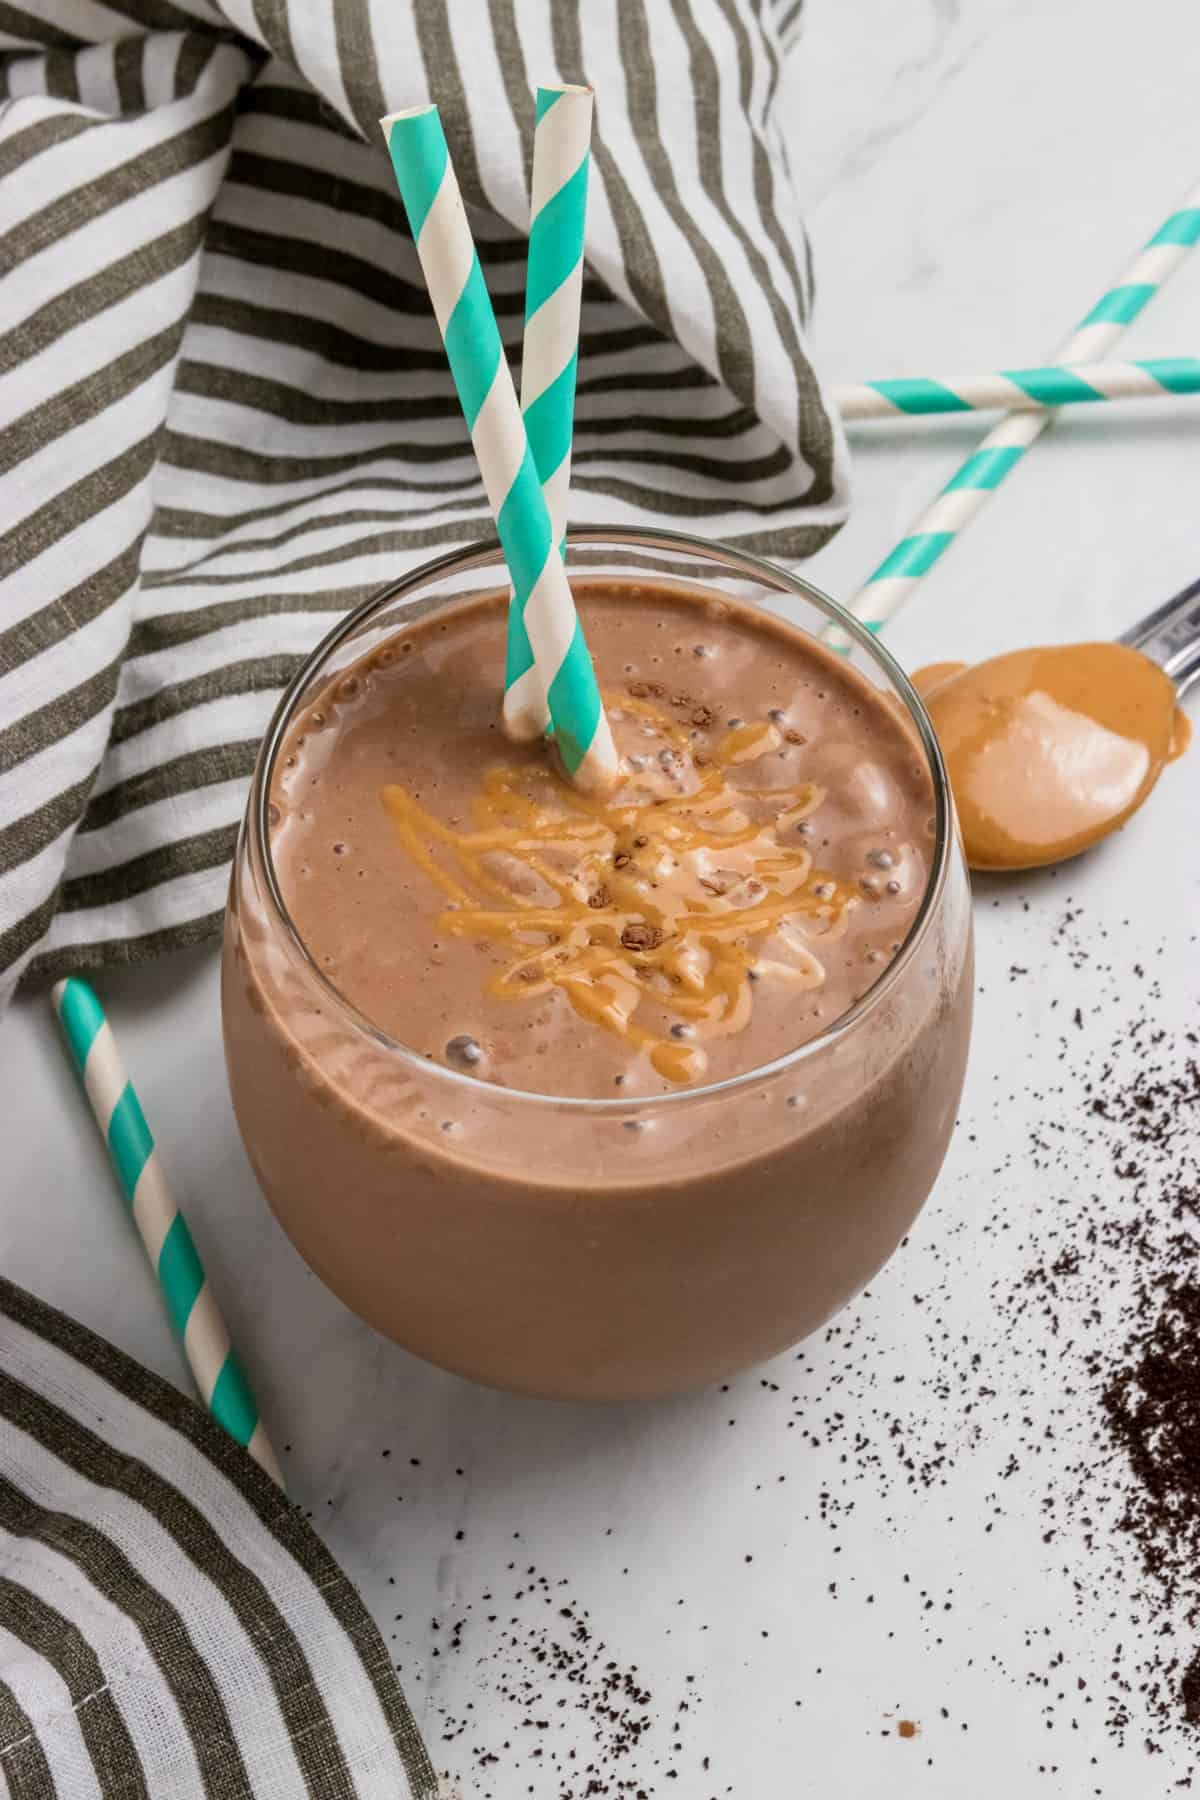 Peanut butter coffee smoothie in glass with straws.